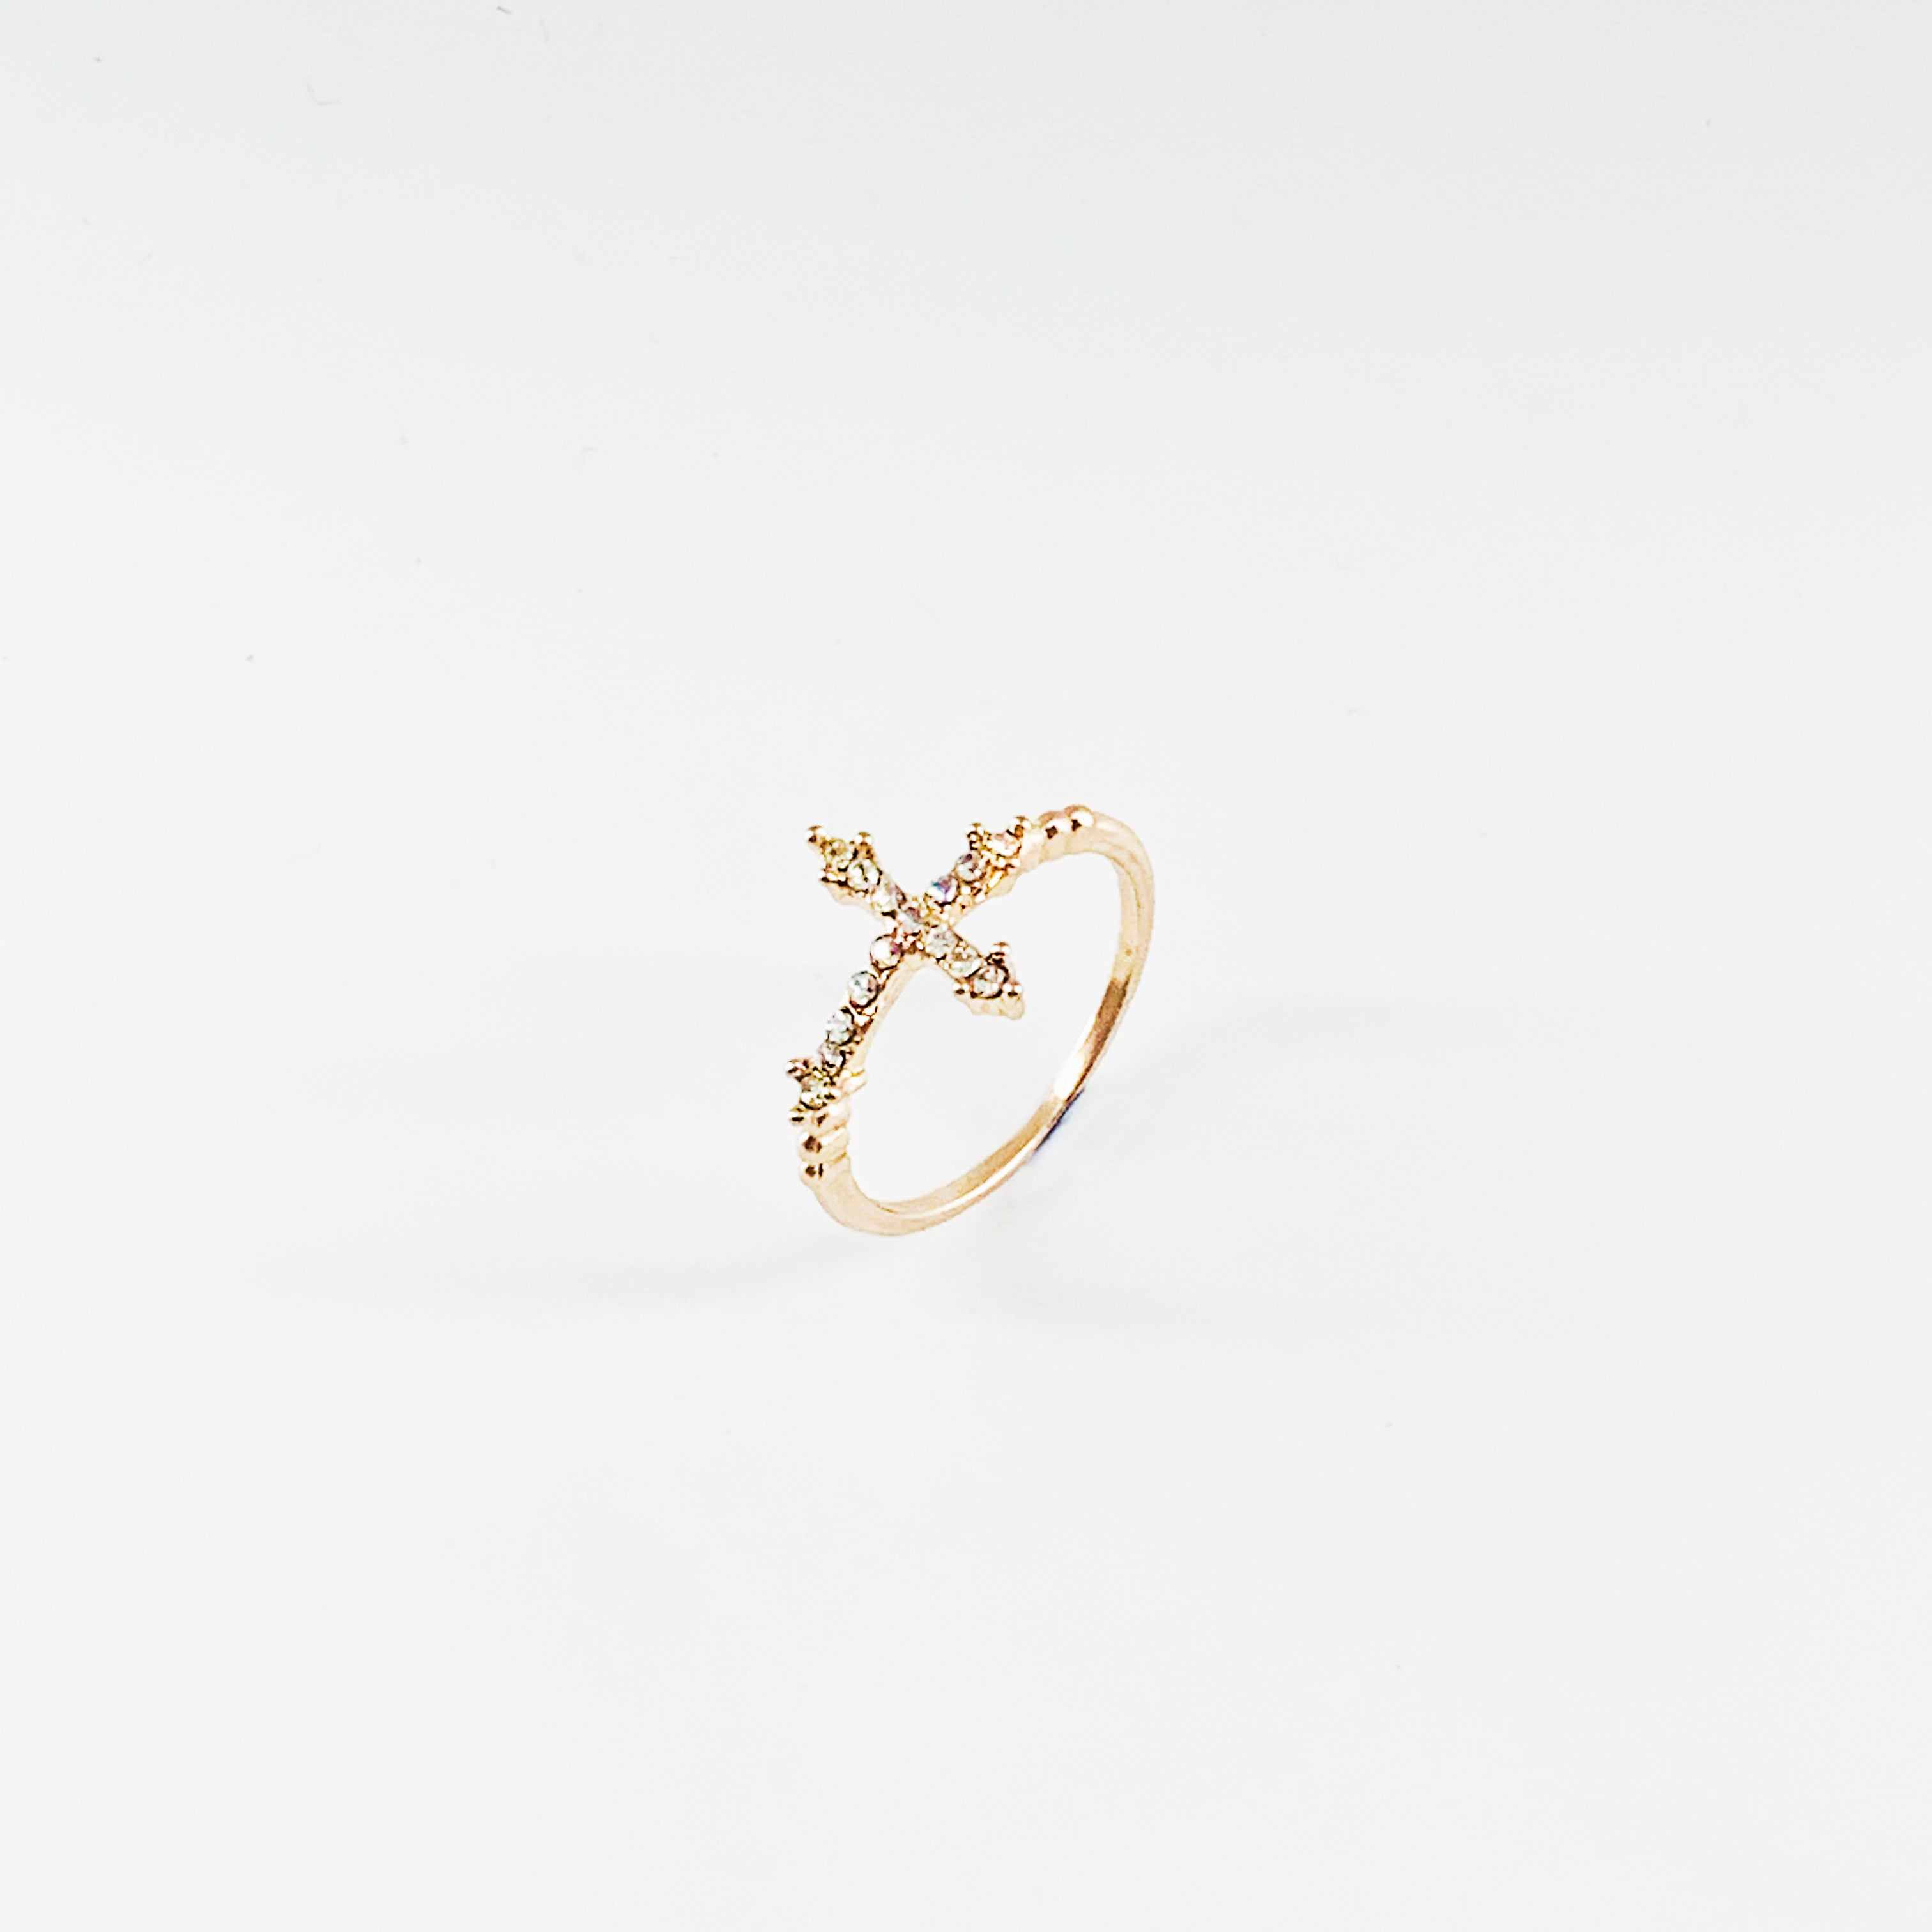 Thin rose gold band with diamante cross